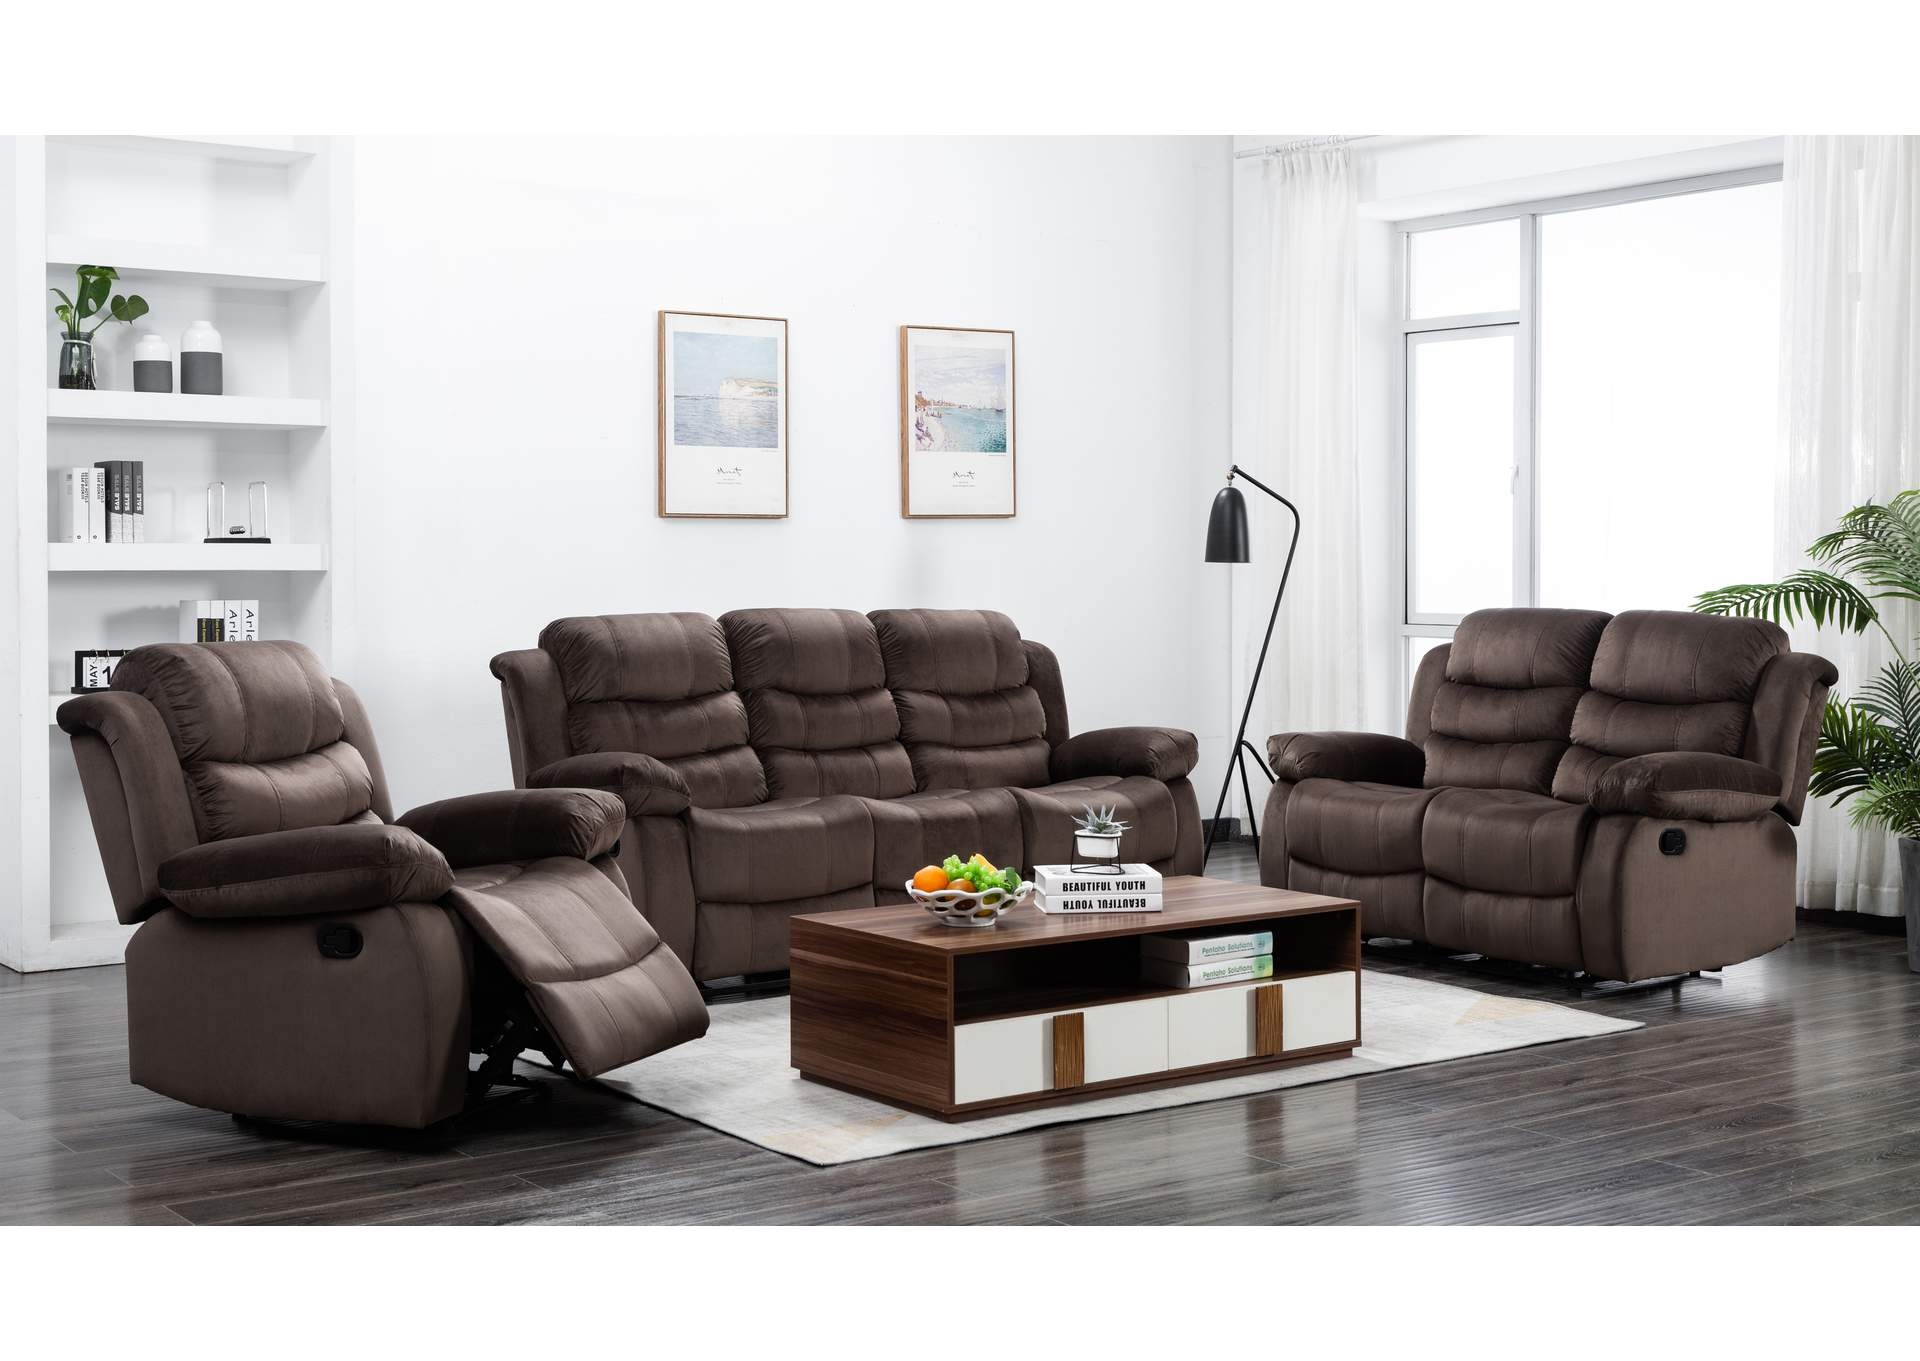 Cocoa Short Plush Reclining Sofa & Loveseat & Recliner,Global Trading